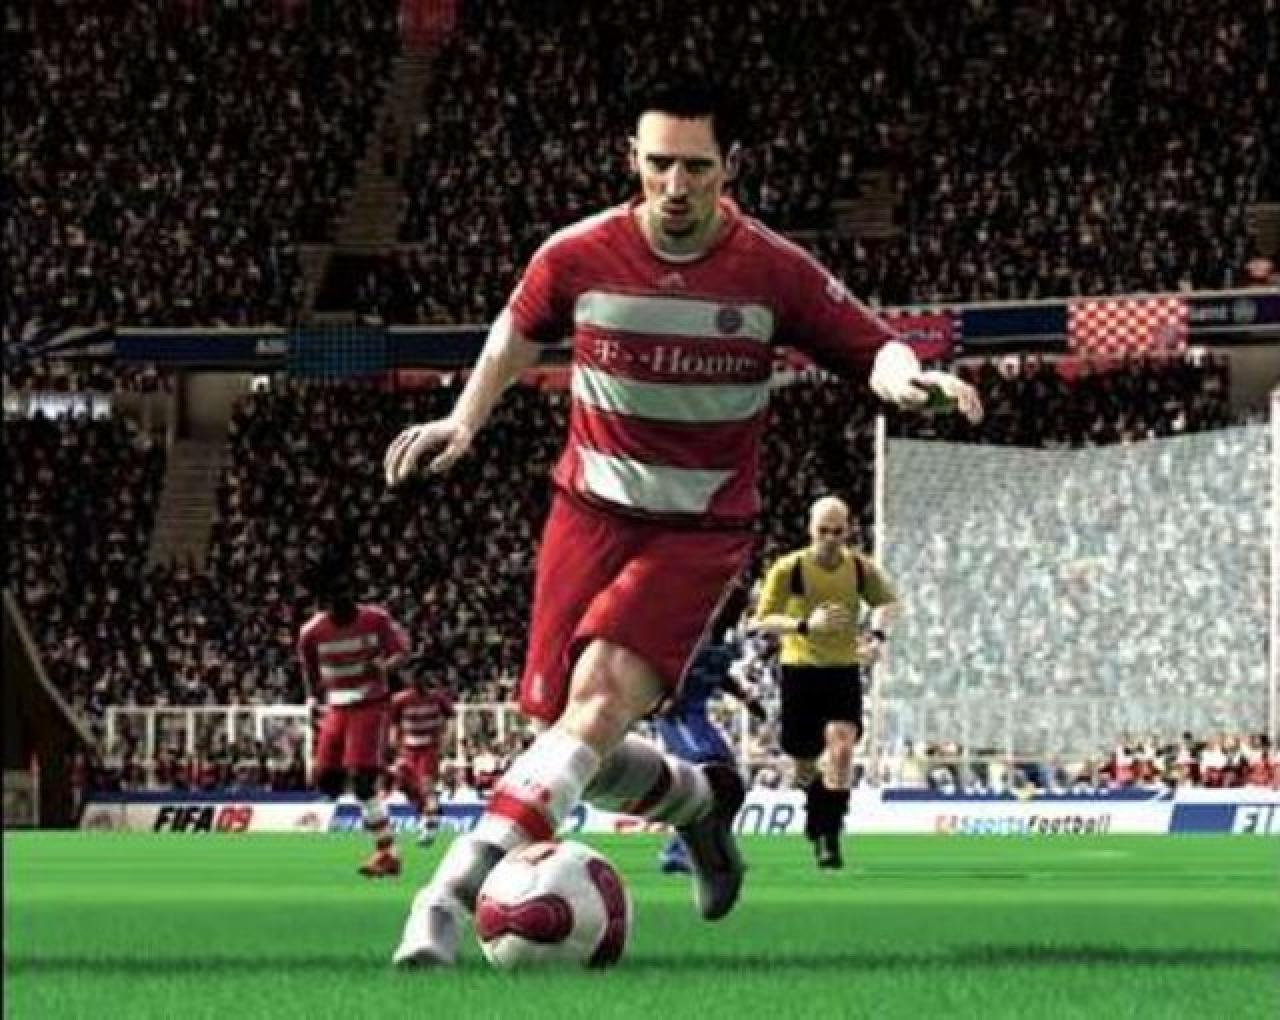 [09/06/08] While the 2008 UEFA European Football Championship started only recently the Portuguese website eurogamer.pt presents the first pictures of Fifa 09. Again there are many recognizable faces and the graphics seem to have been improved, too. (picture: eurogamer.pt)